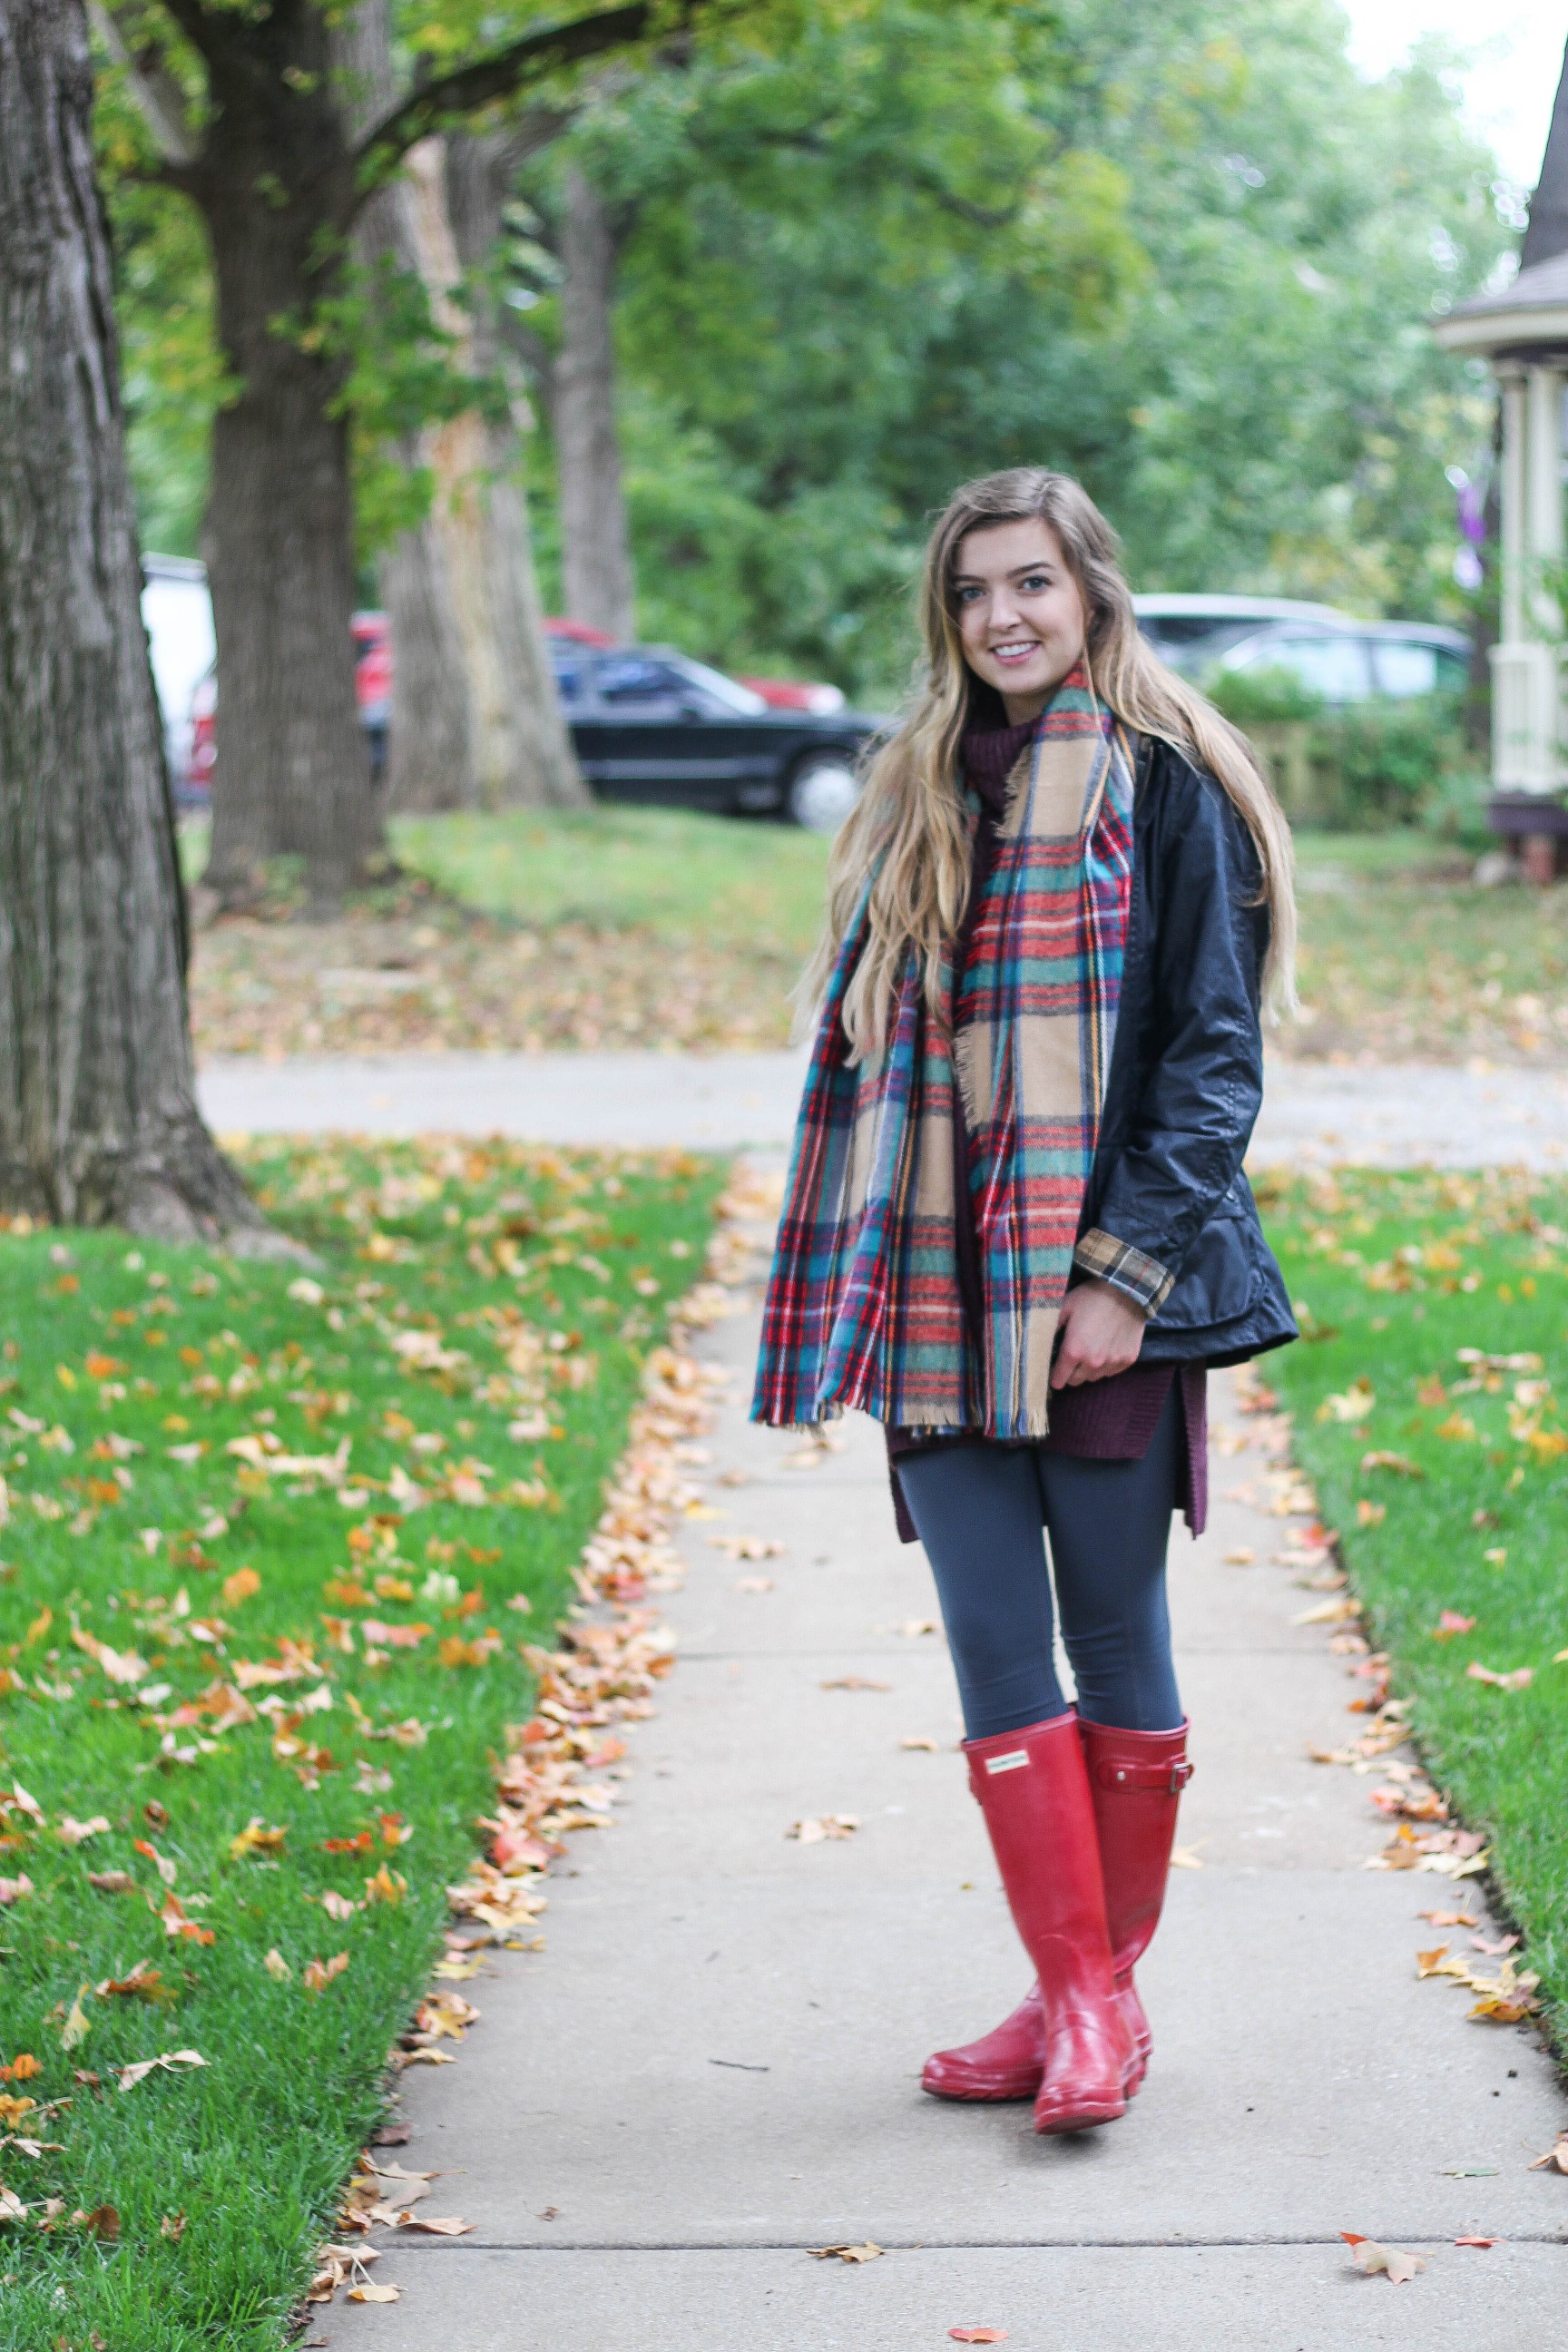 Barbour coats and blanket scarves are perfect for fall, see it on the blog daily dose of charm by lauren lindmark dailydoseofcharm.com